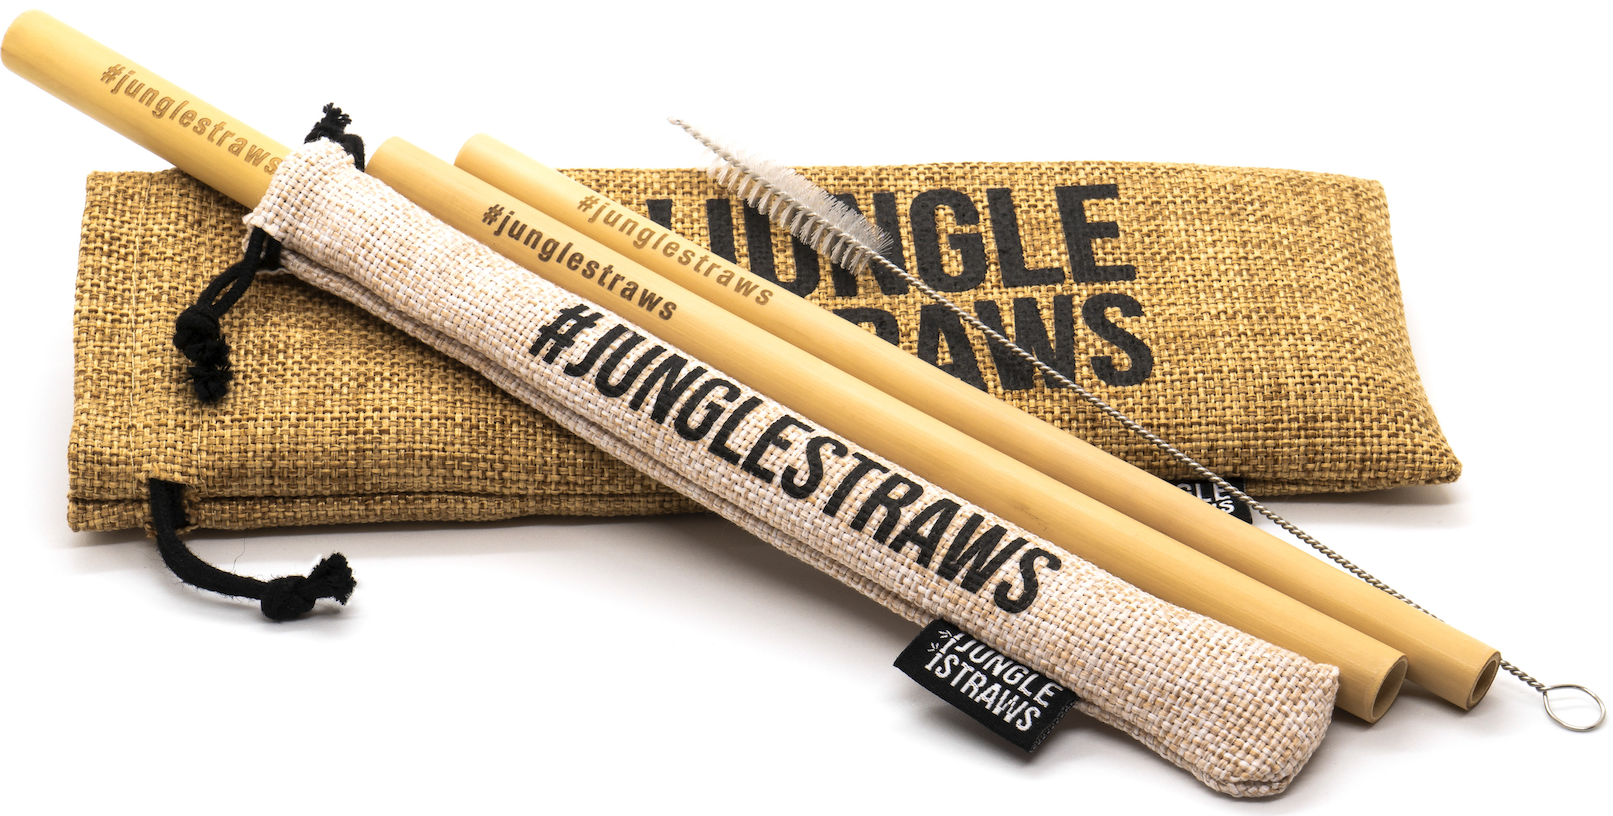 Buy-Reusable-Bamboo-Straws-UK-Jungle-Straws-Organic-Ethical-Product.png